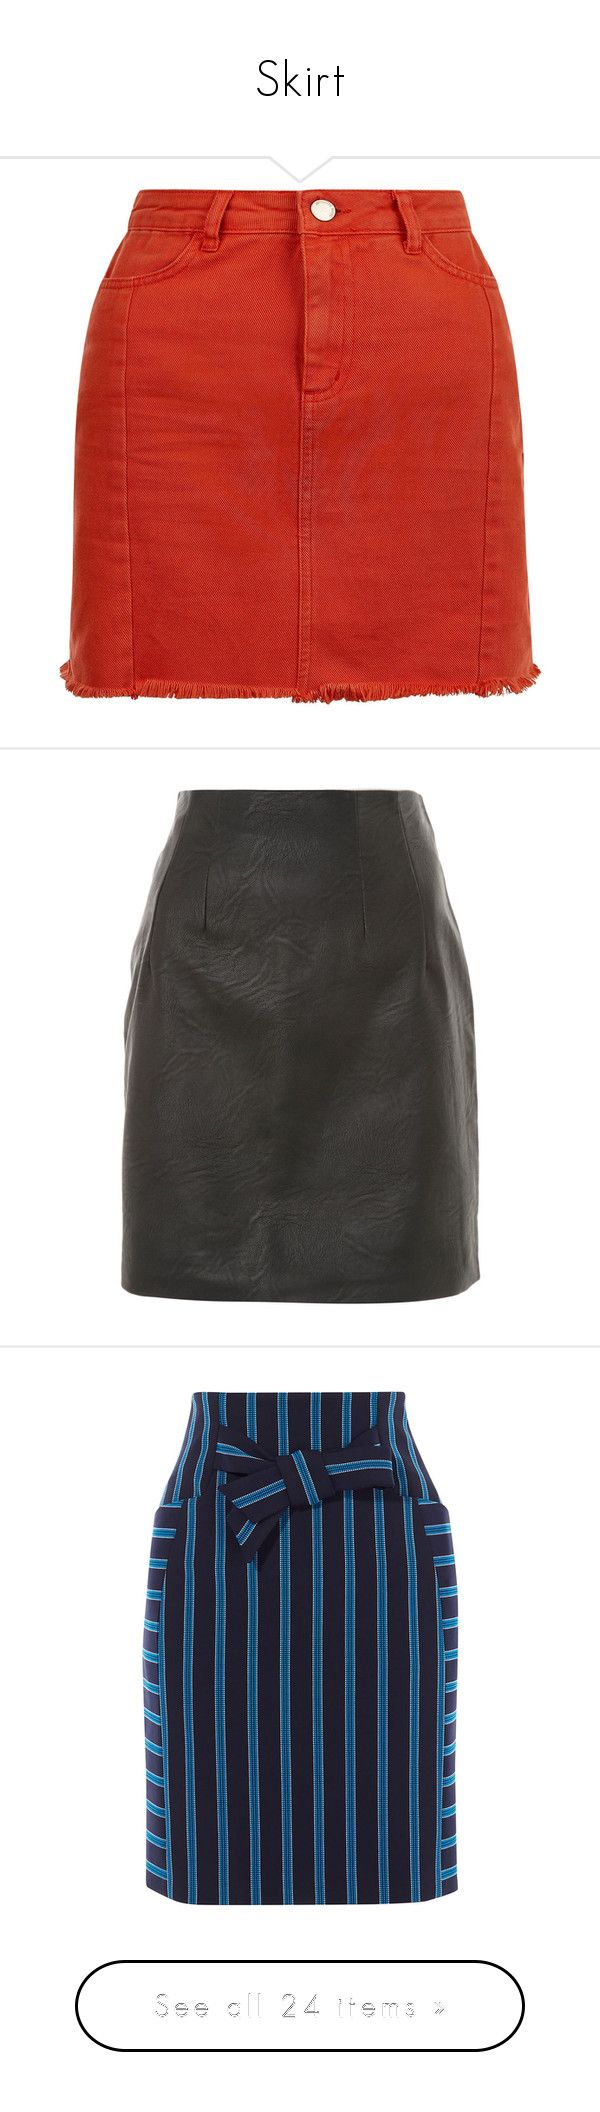 """Skirt"" by creamyourself ❤ liked on Polyvore featuring skirts, red denim skirt, red knee length skirt, denim skirt, knee length denim skirt, red skirt, black, topshop skirts, faux leather skirt and leather look skirt"